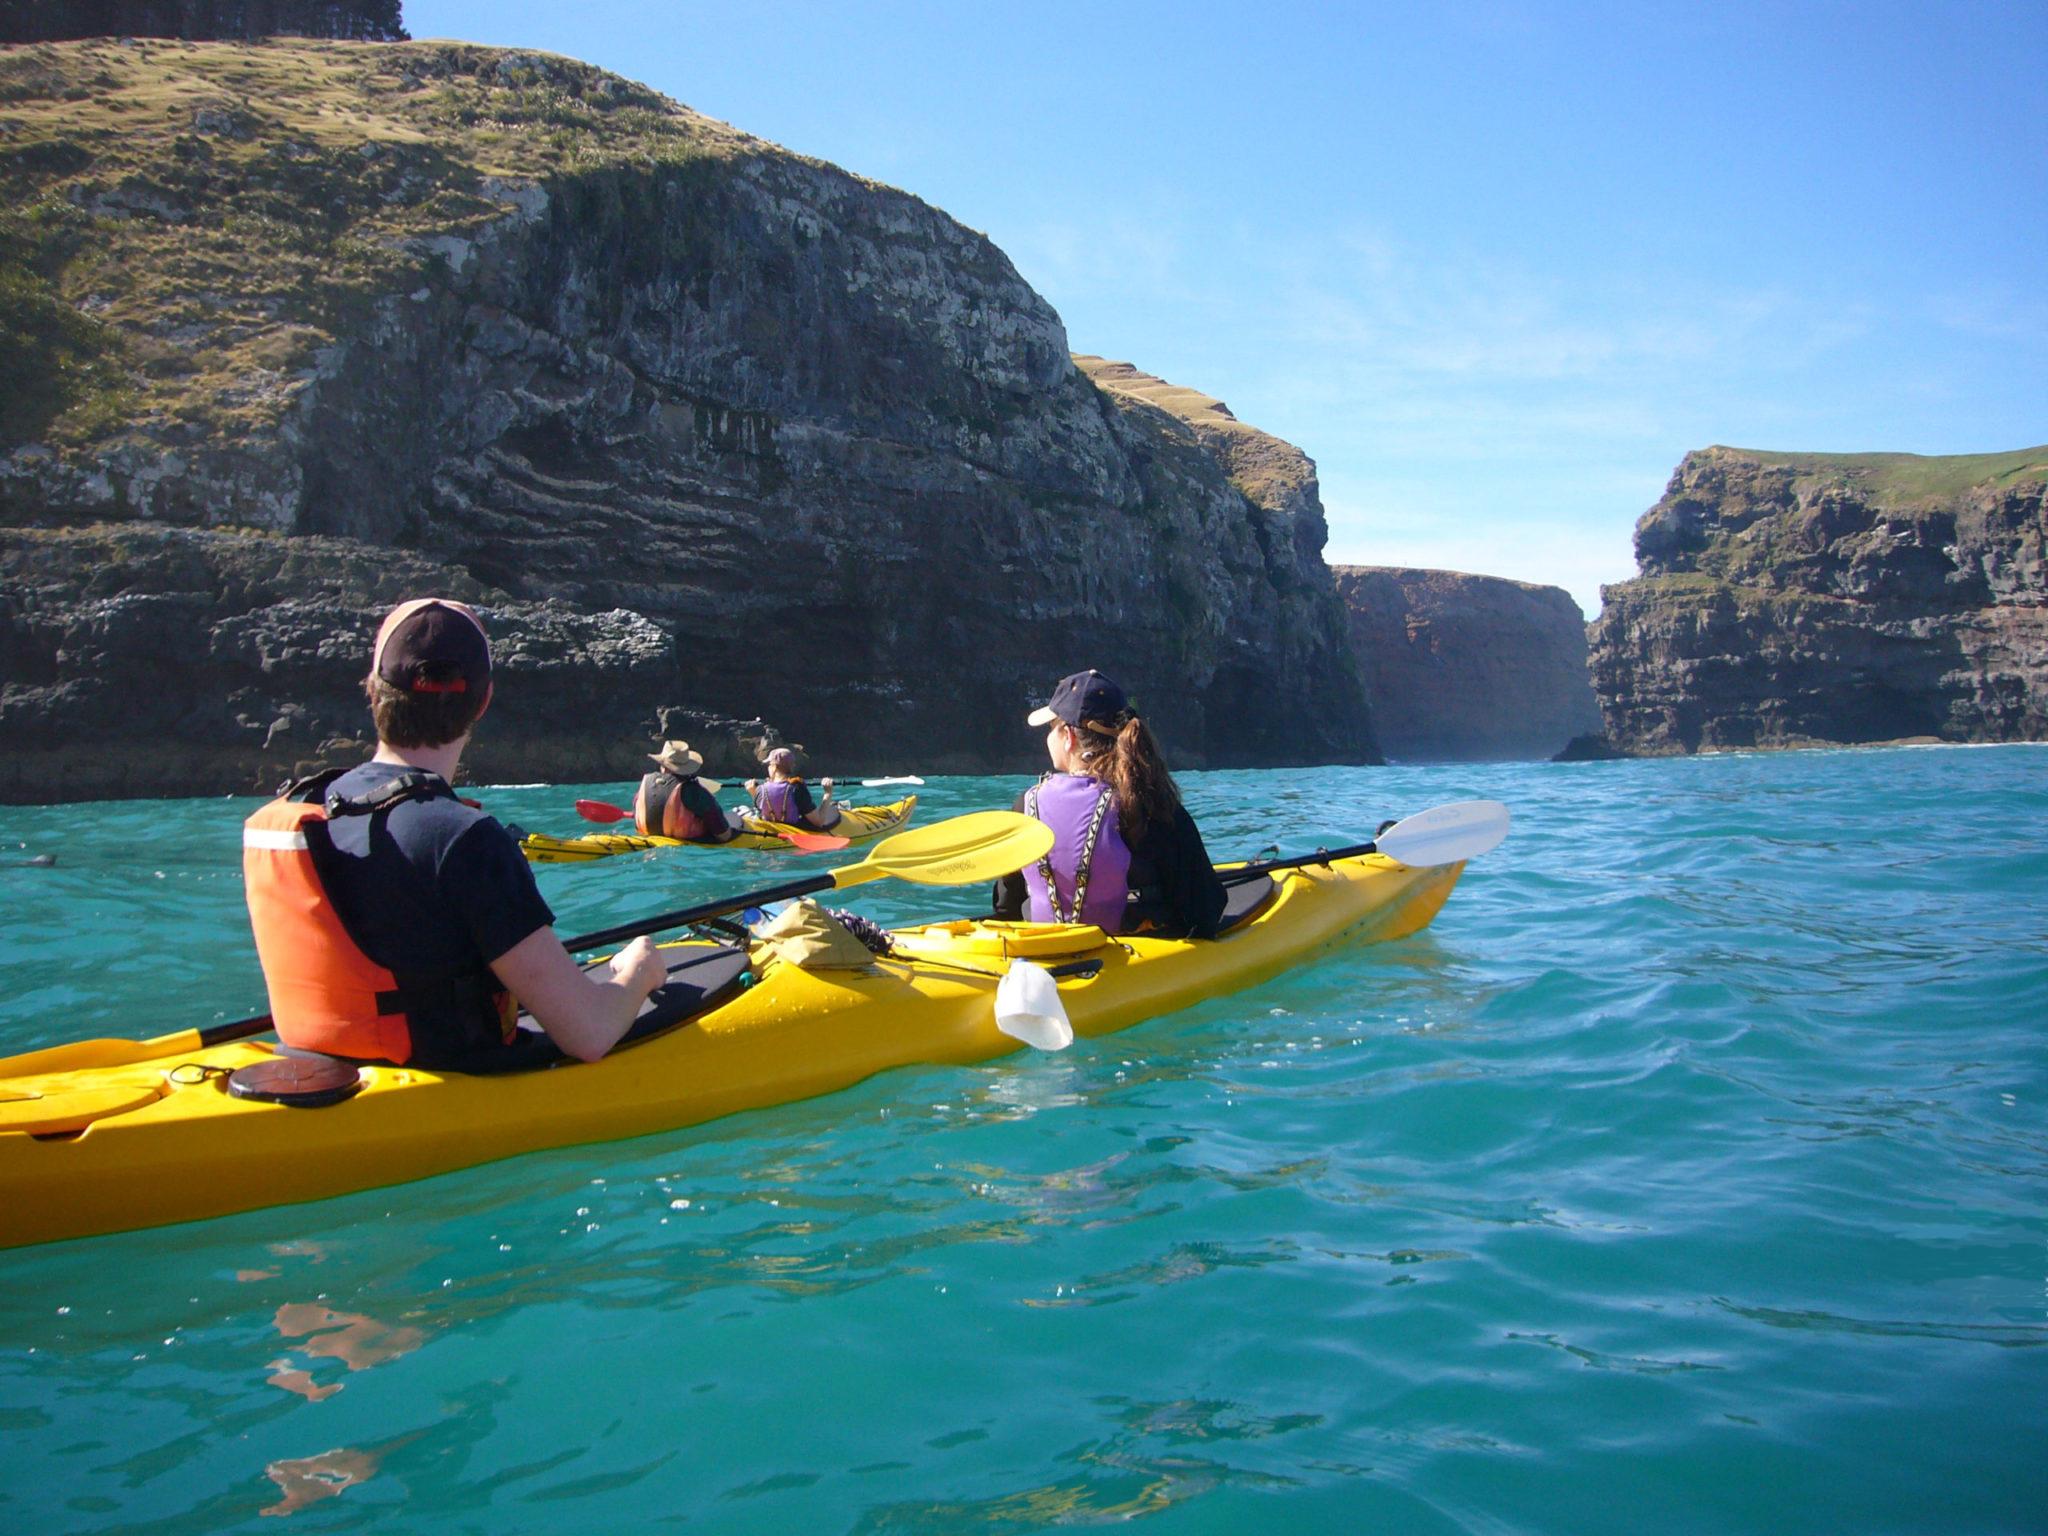 Banks Peninsula 4×4 scenic sea kayaking safari in New Zealand